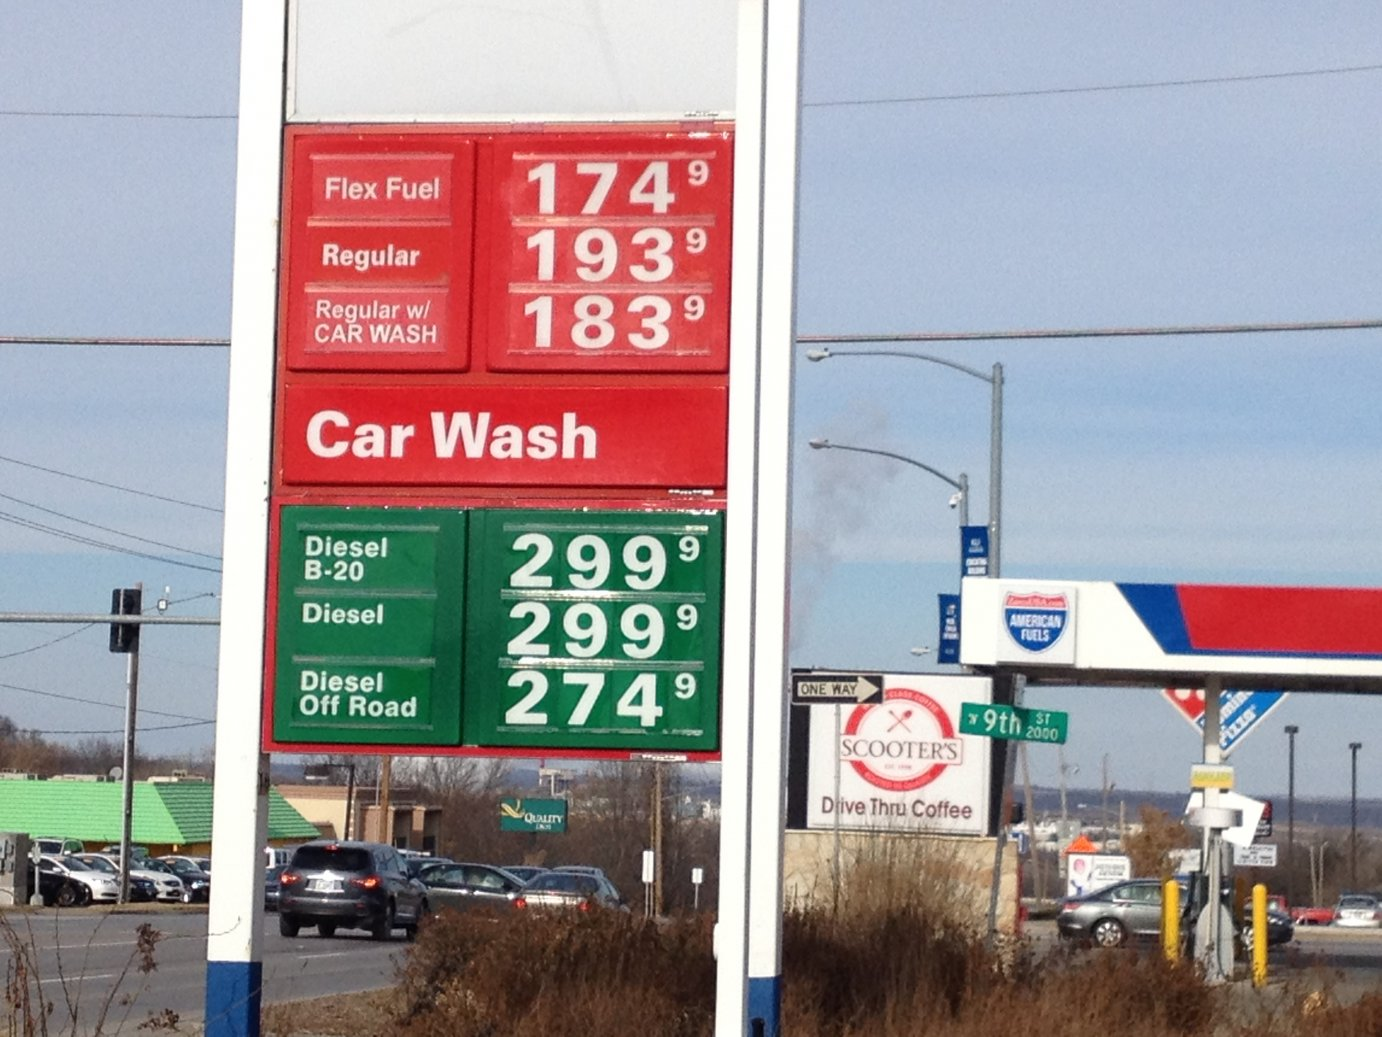 Lower prices at the pump spell bad news for Kansas counties that rely heavily on oil and gas tax revenue. (Photo by J. Schafer, taken 12/31/14)